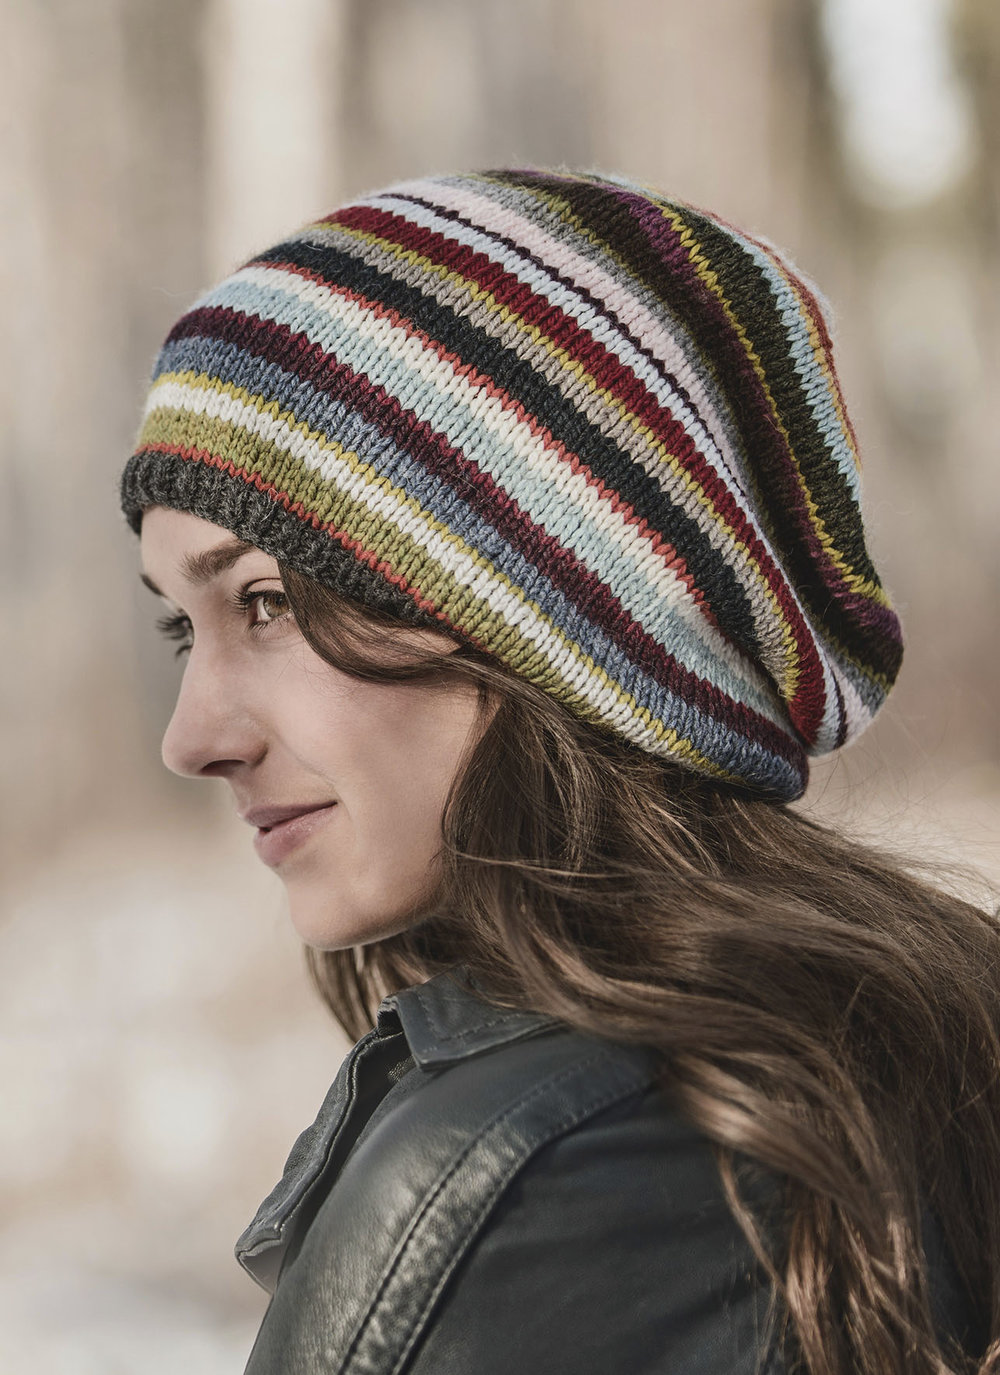 Click here for the pattern and yarn kit